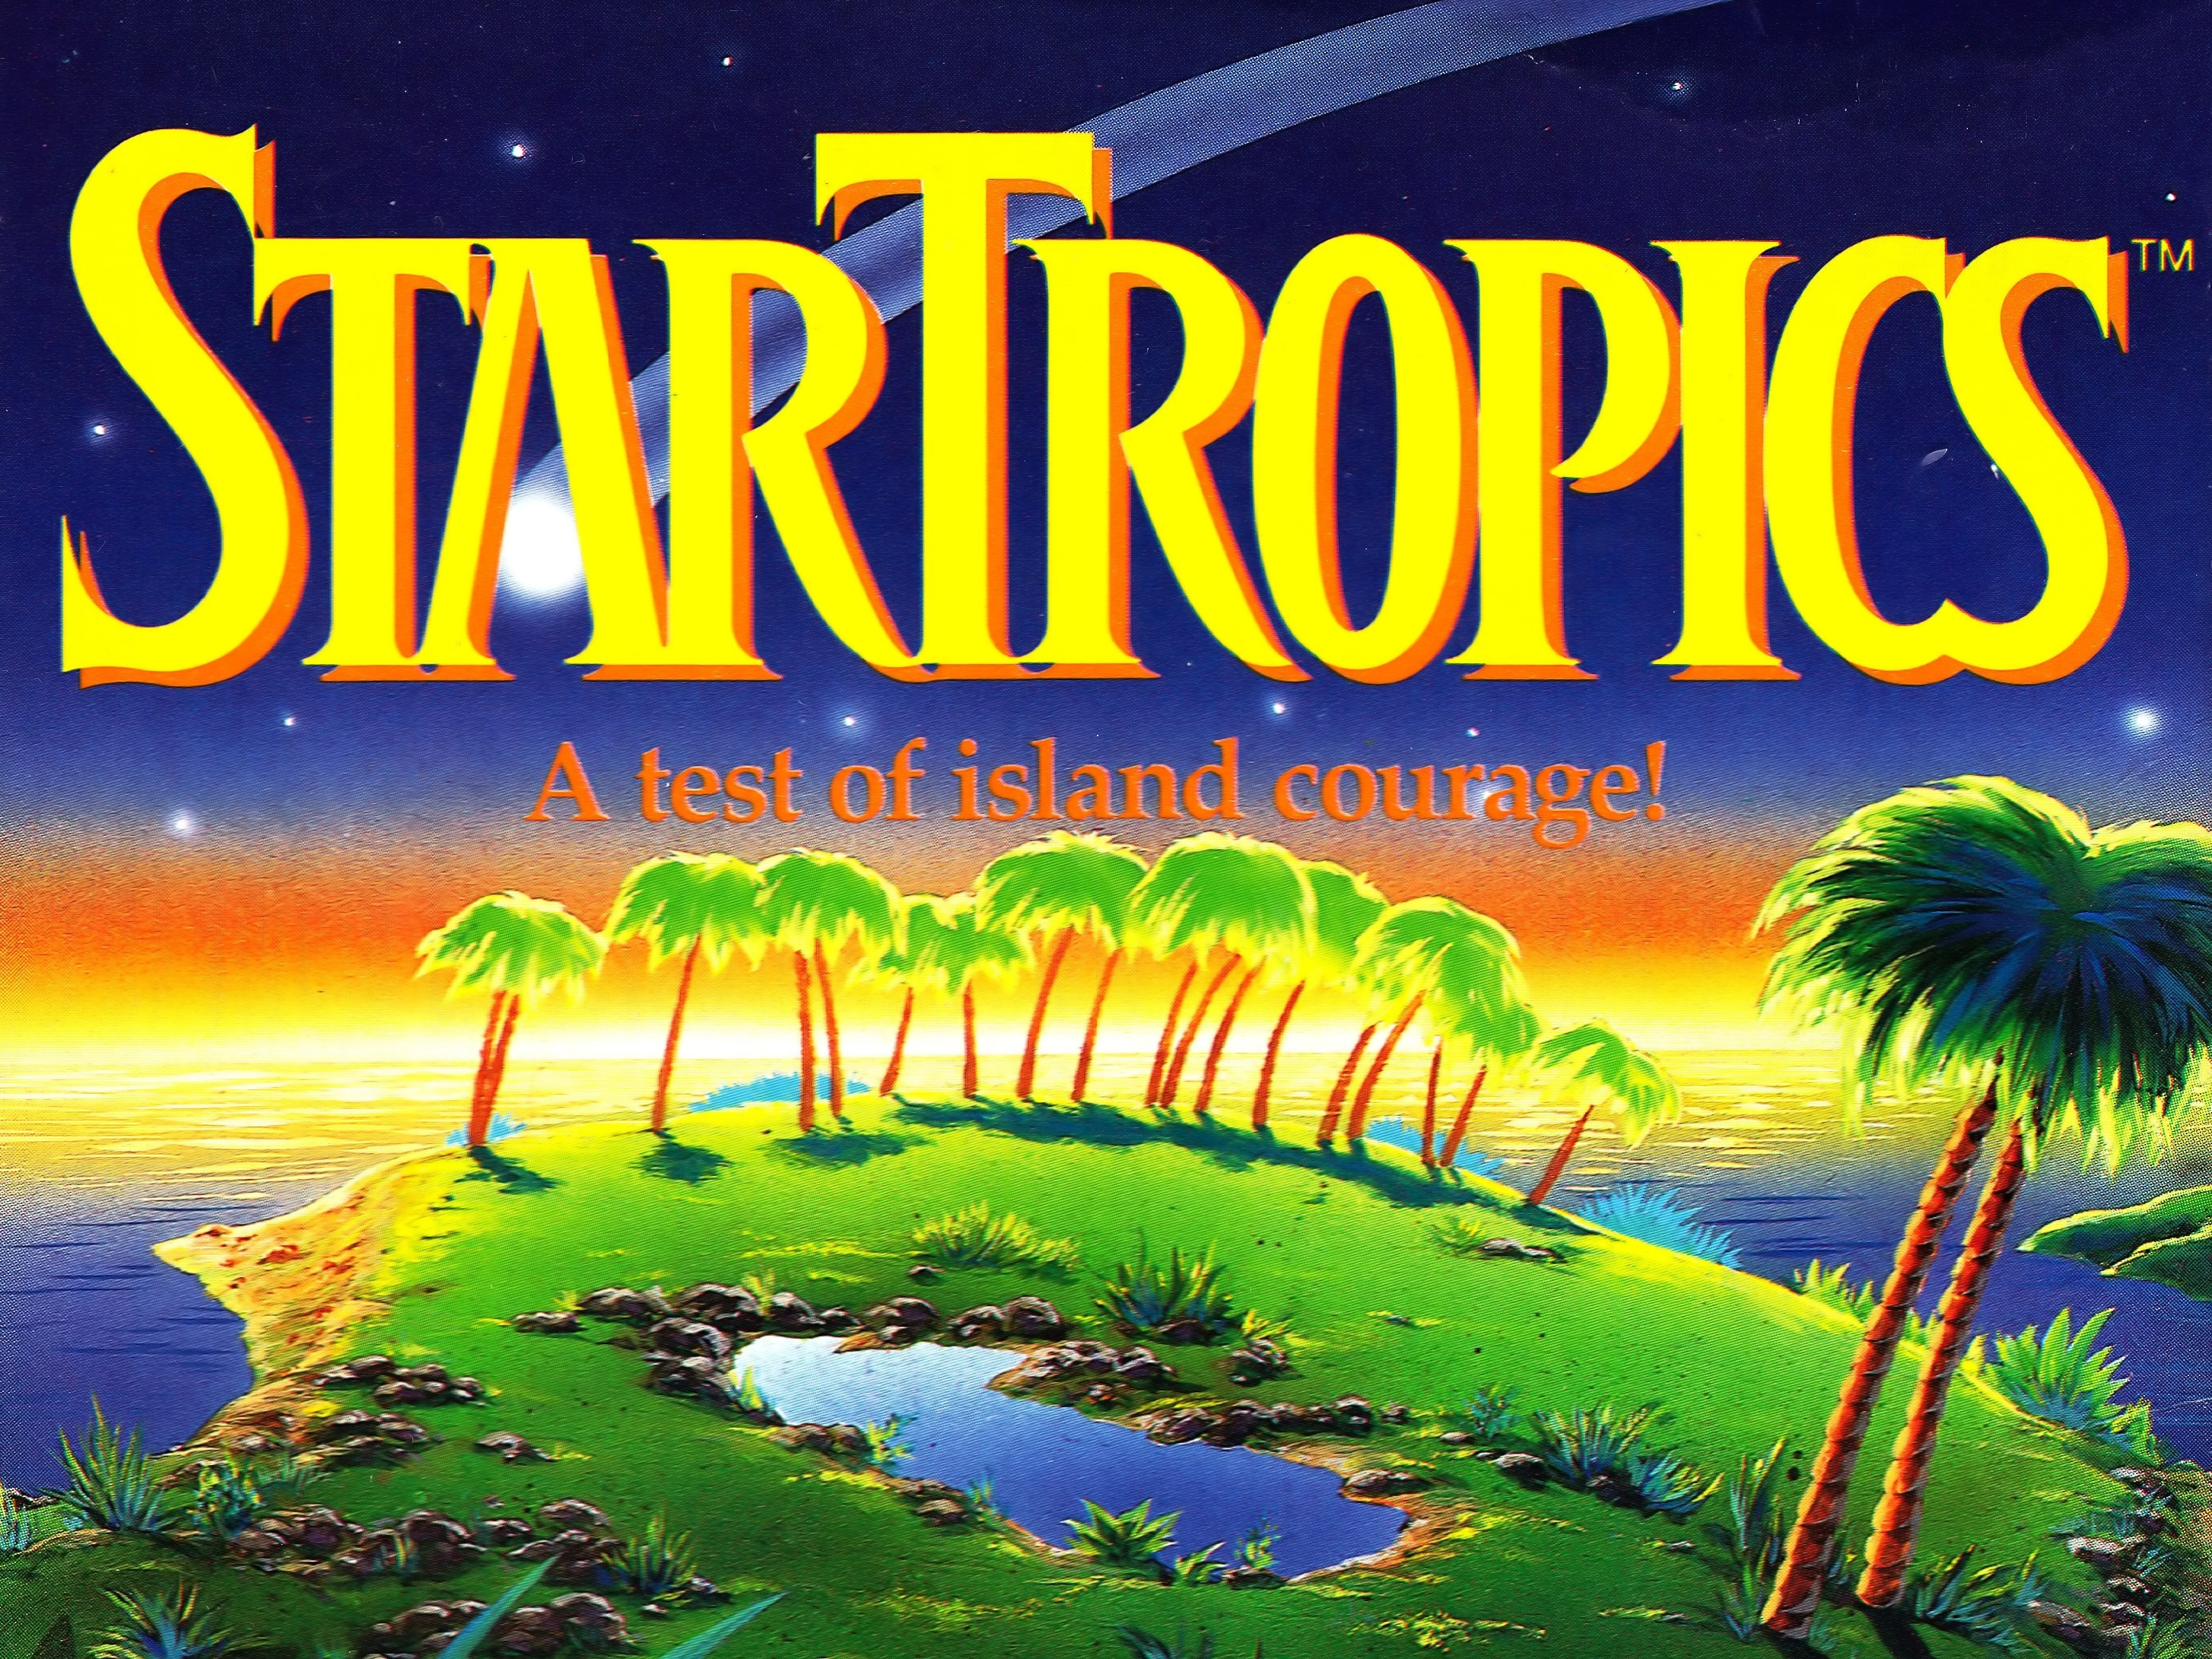 2 Star Tropics HD Wallpapers Background Images Wallpaper Abyss